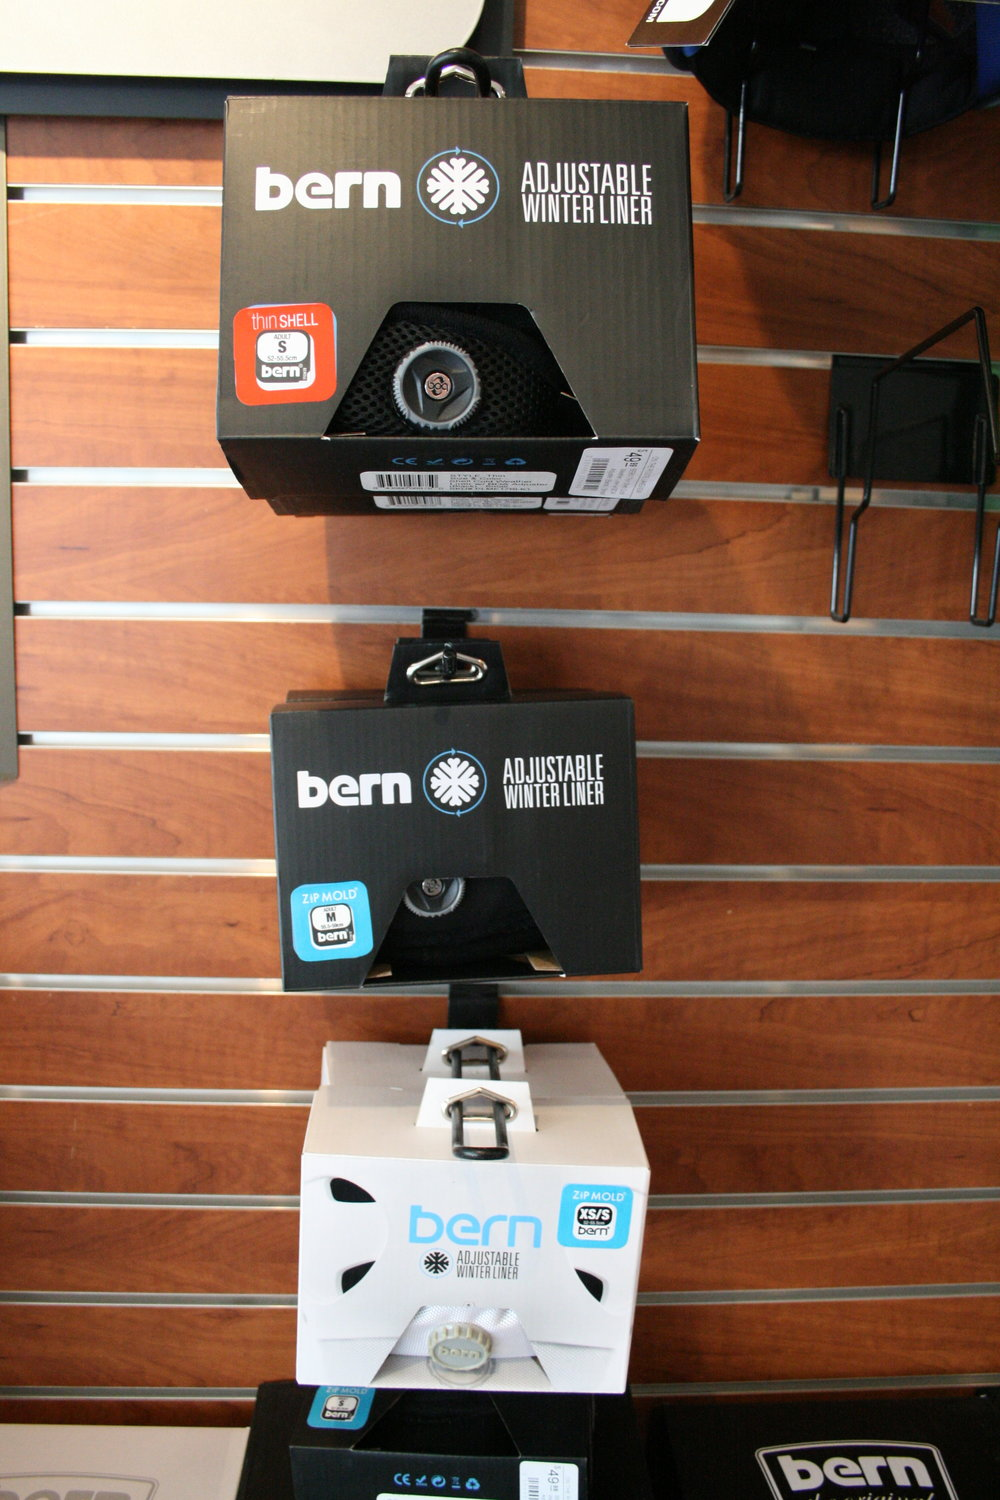 Bern Adjustable Winter Liners - $49.99